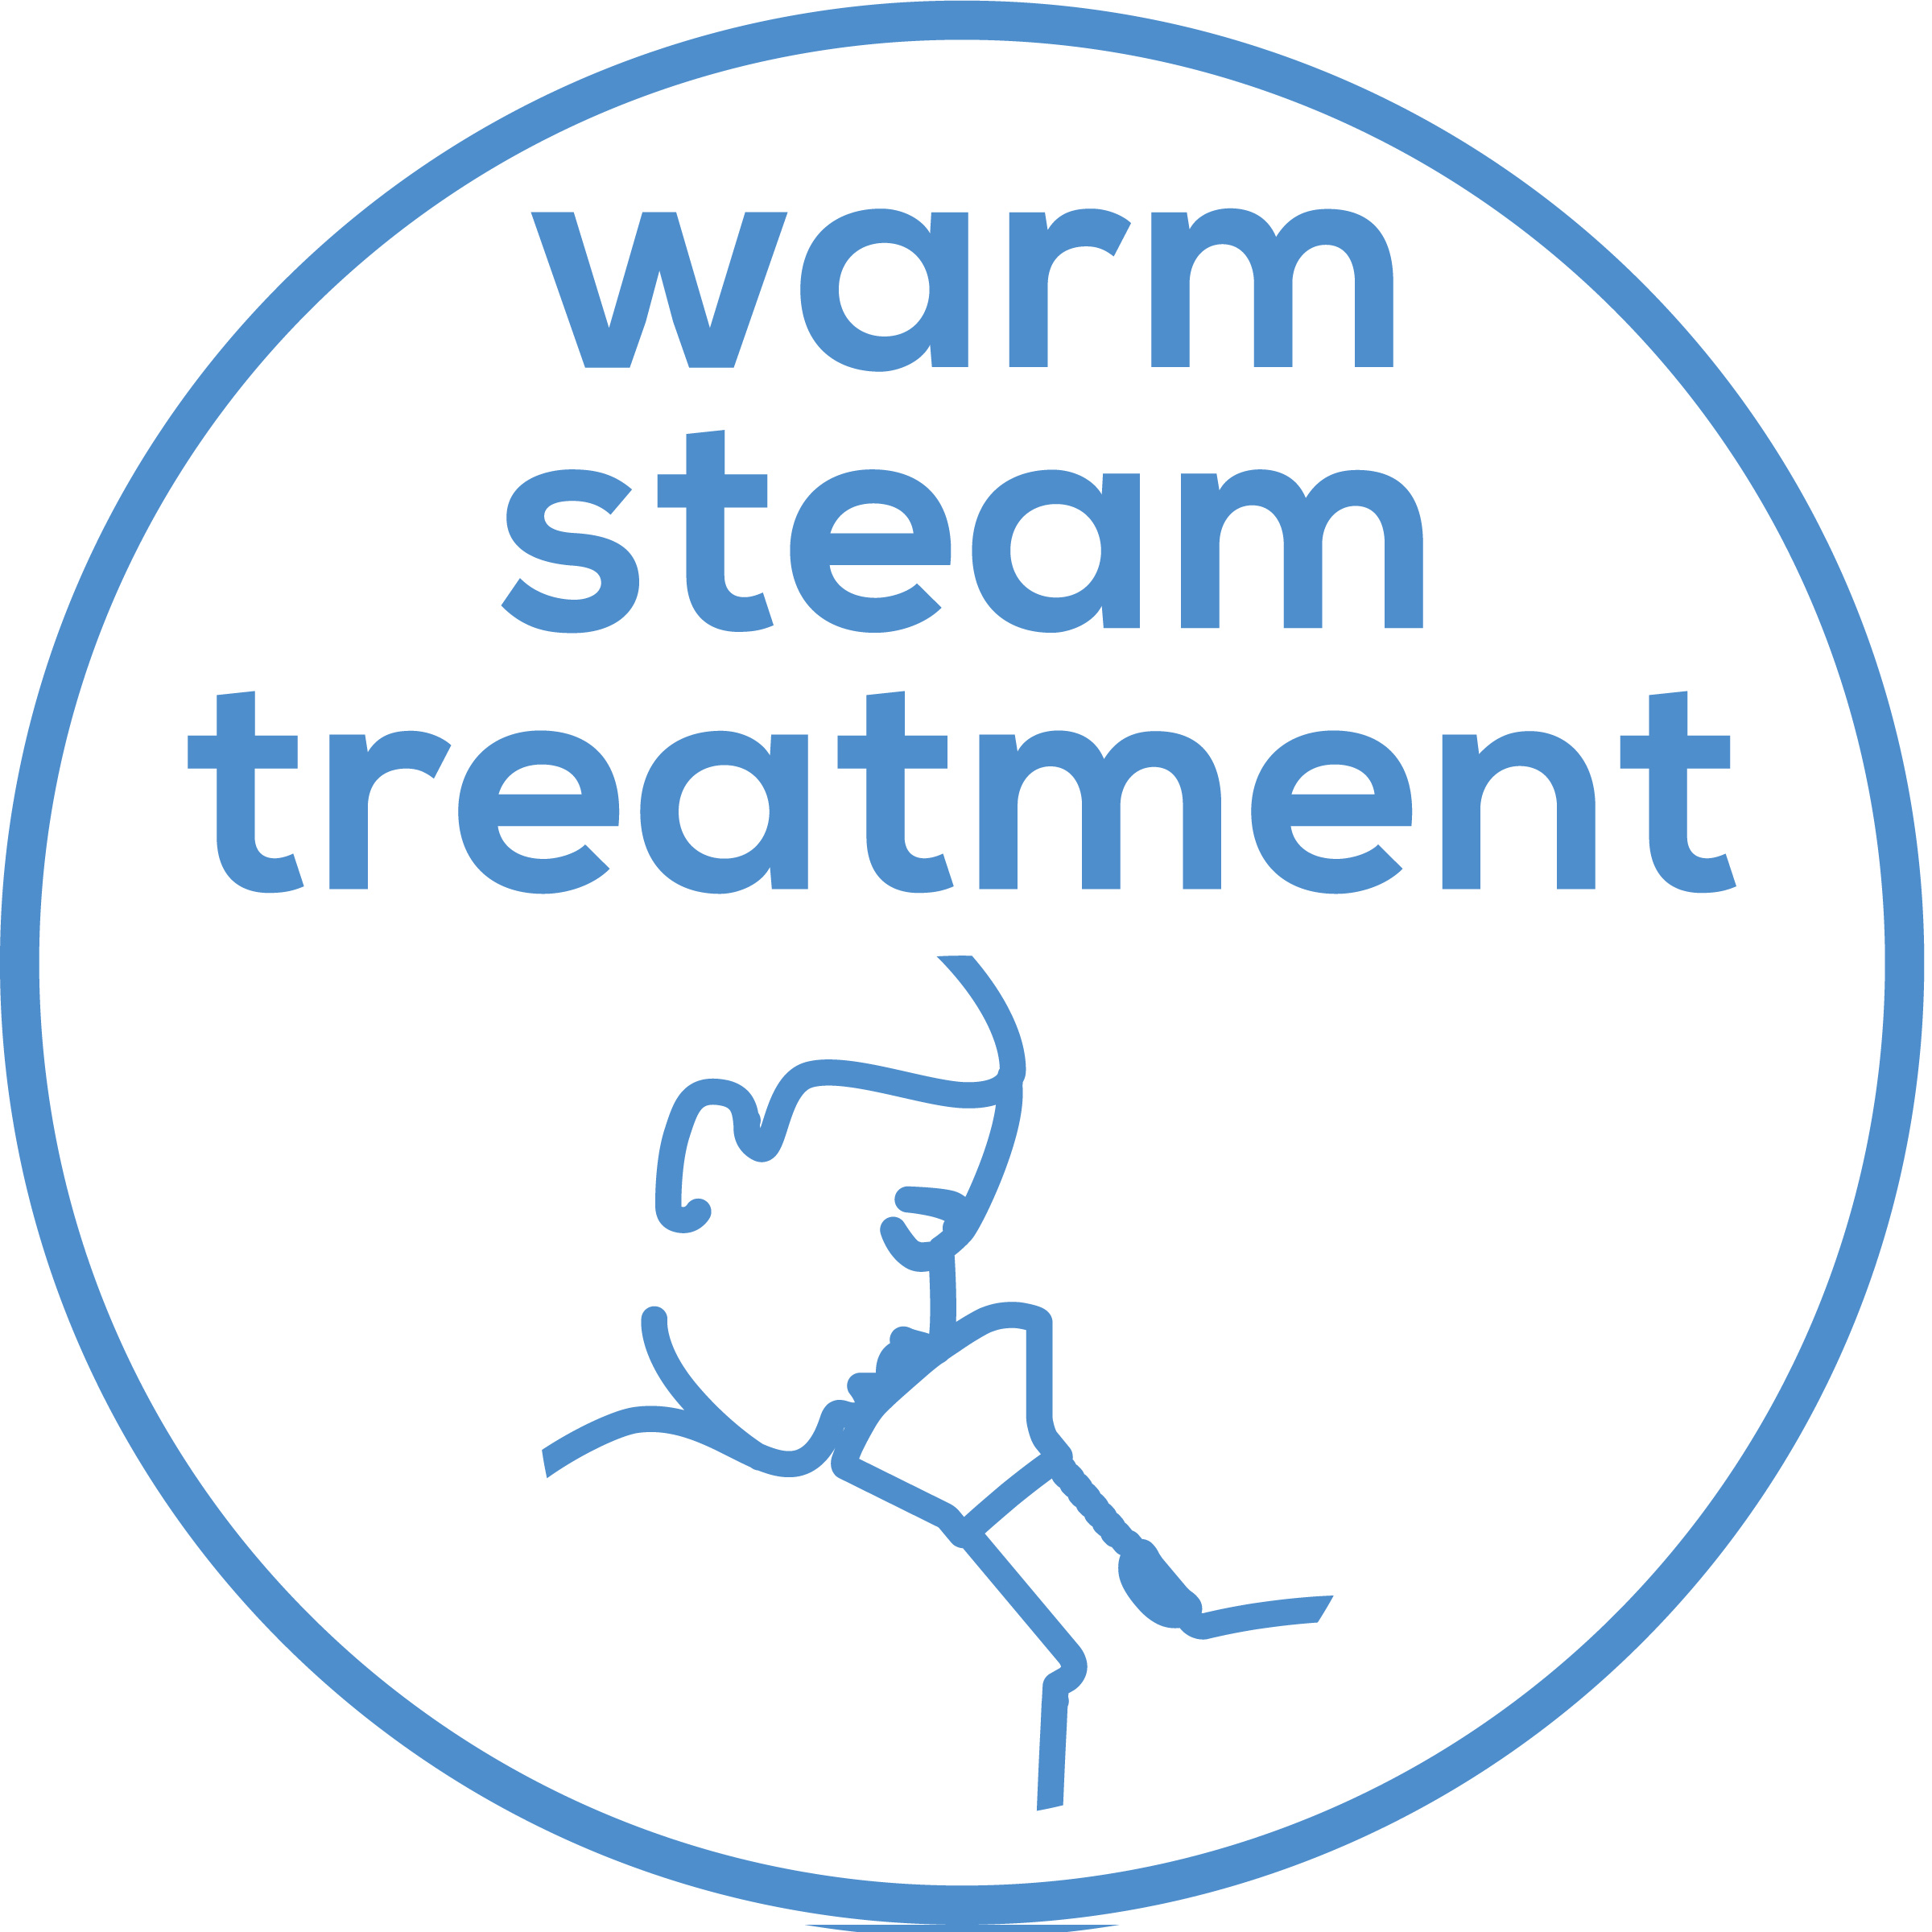 Warm steam treatment Soothing treatment during the cold season